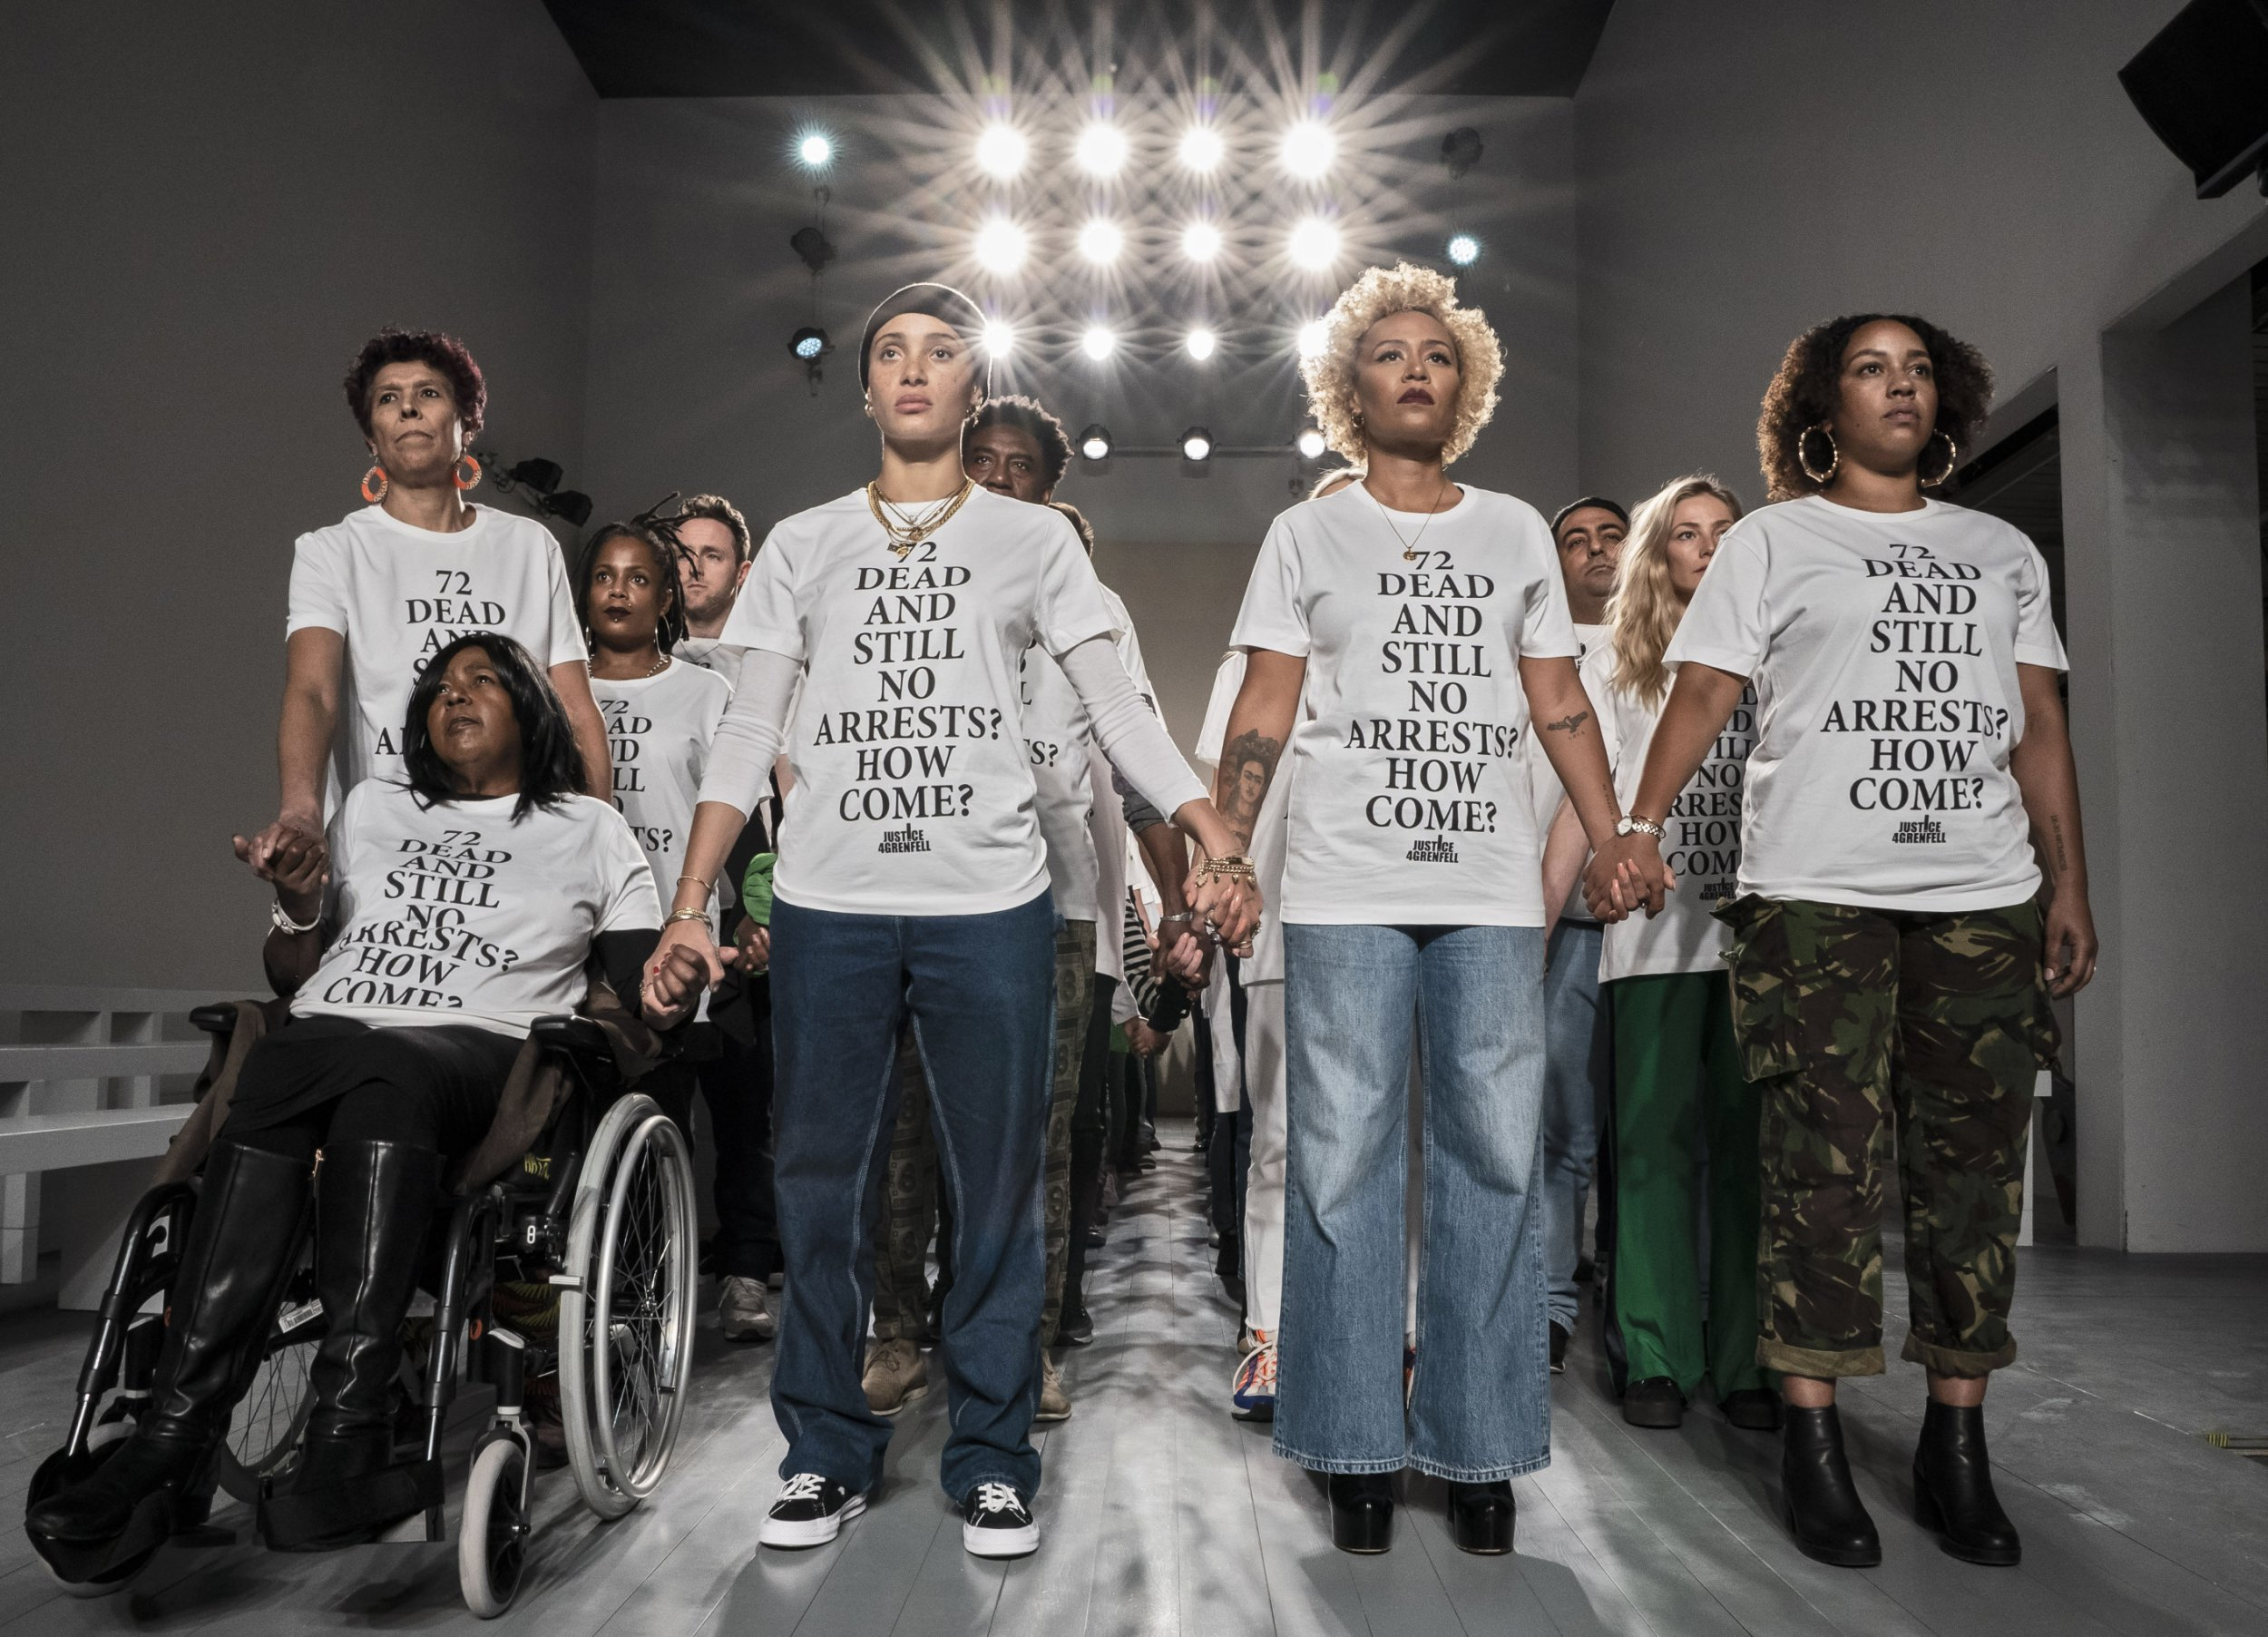 Grenfell activists take to London Fashion Week catwalk